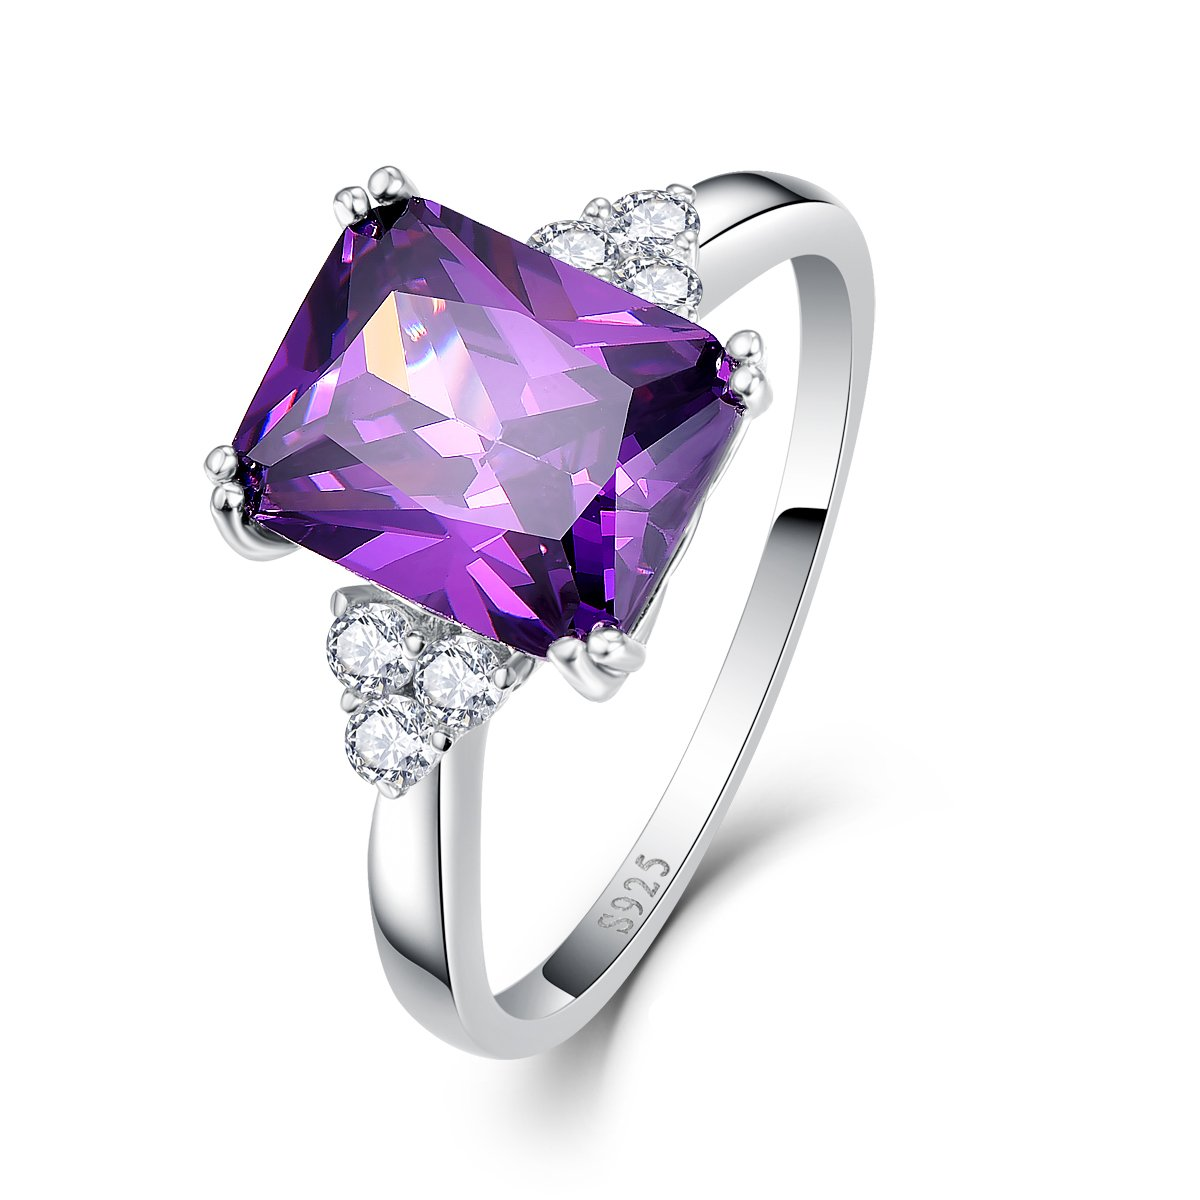 BONLAVIE Women's 5.25Ct Emerald Cut Created Amethyst CZ 925 Sterling Silver Solitaire Engagement Ring